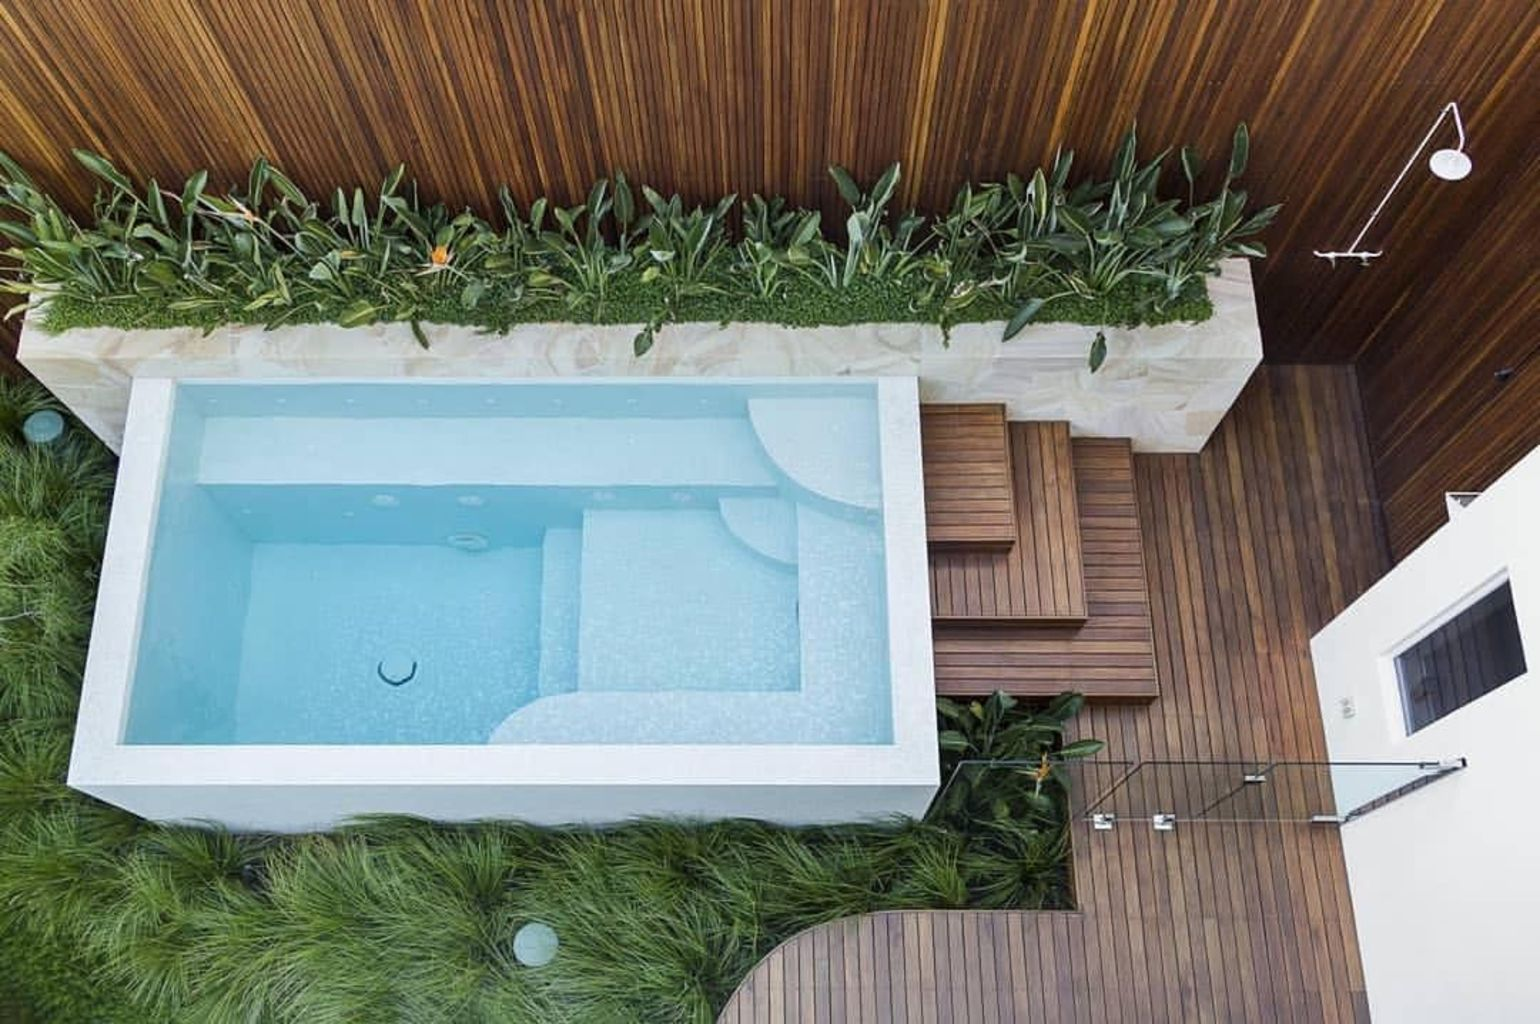 Small swimming pools made for small spaces and tight budgets Part 19